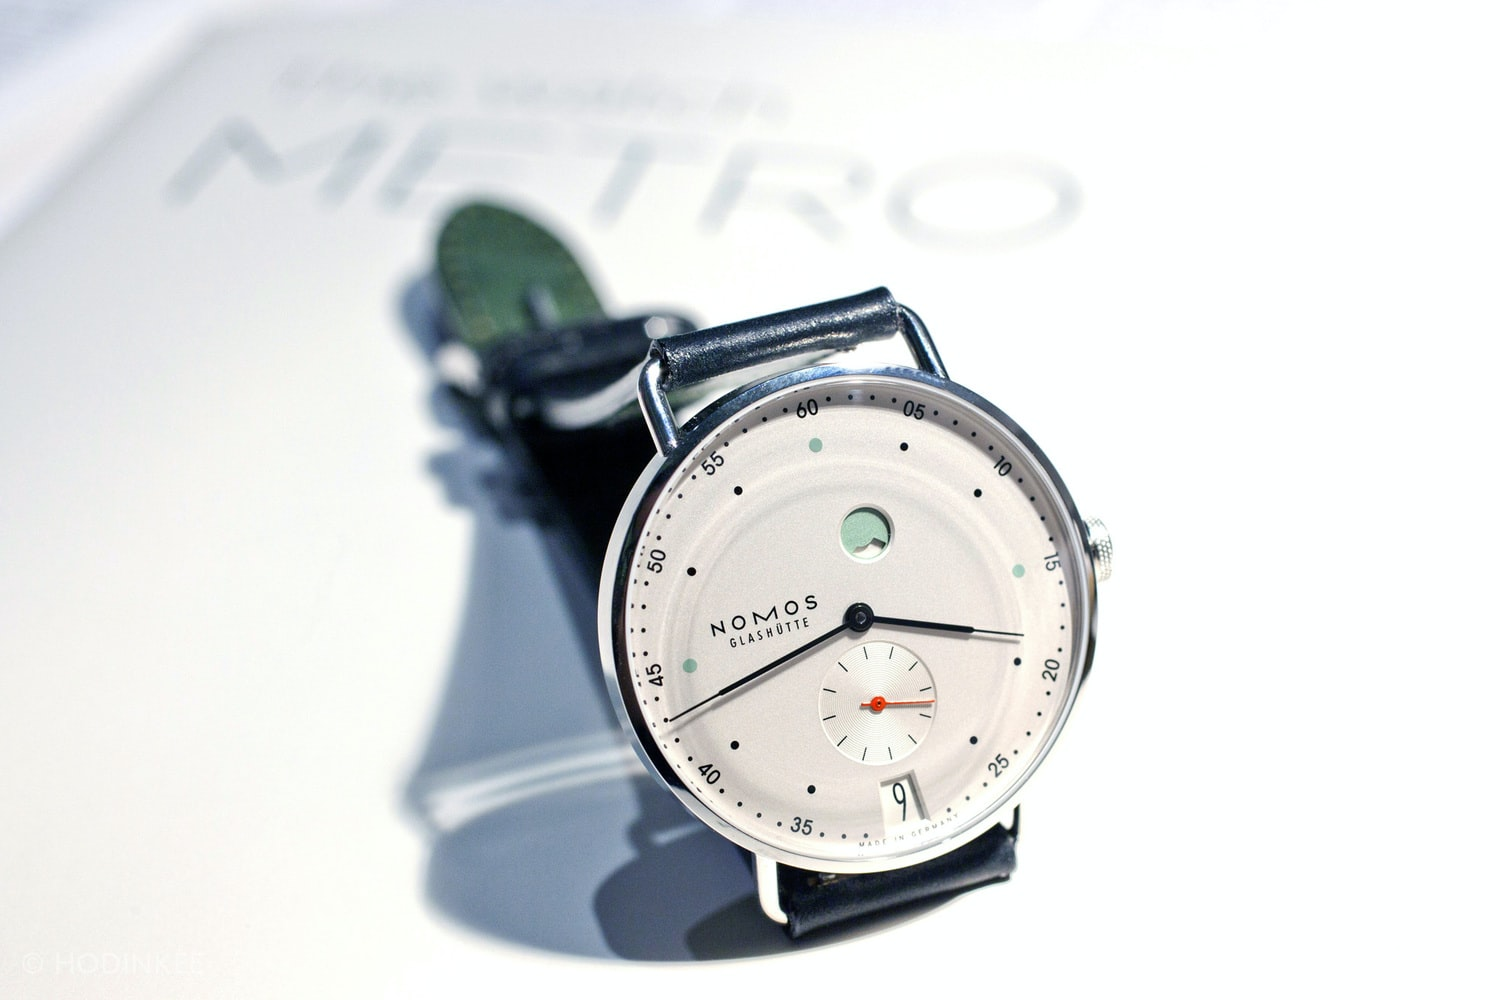 Introducing: The Nomos Metro Datum Gangsreserve